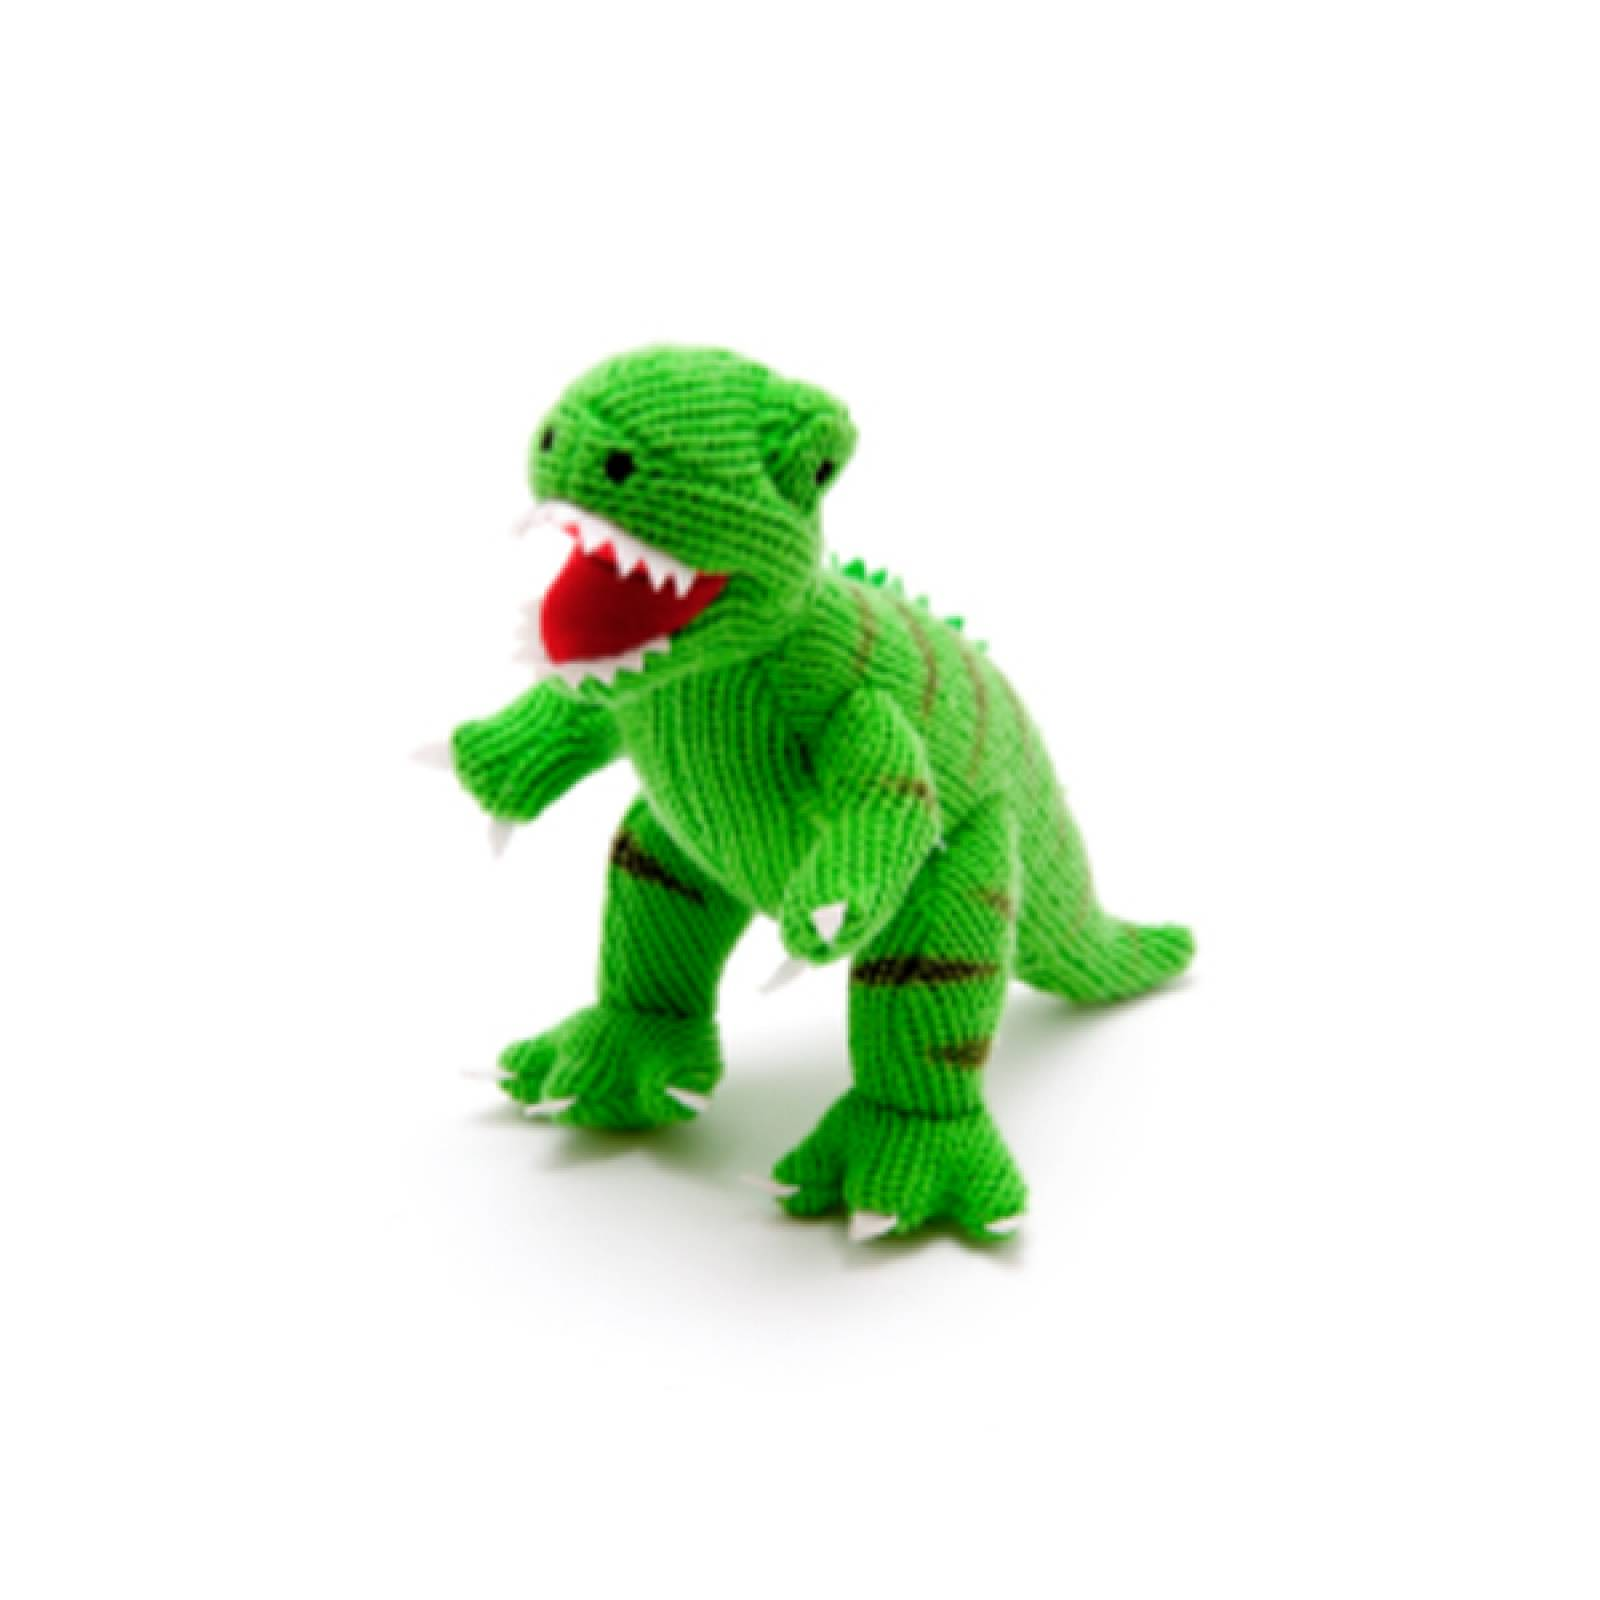 T Rex Dinosaur Knitted Rattle Soft Toy